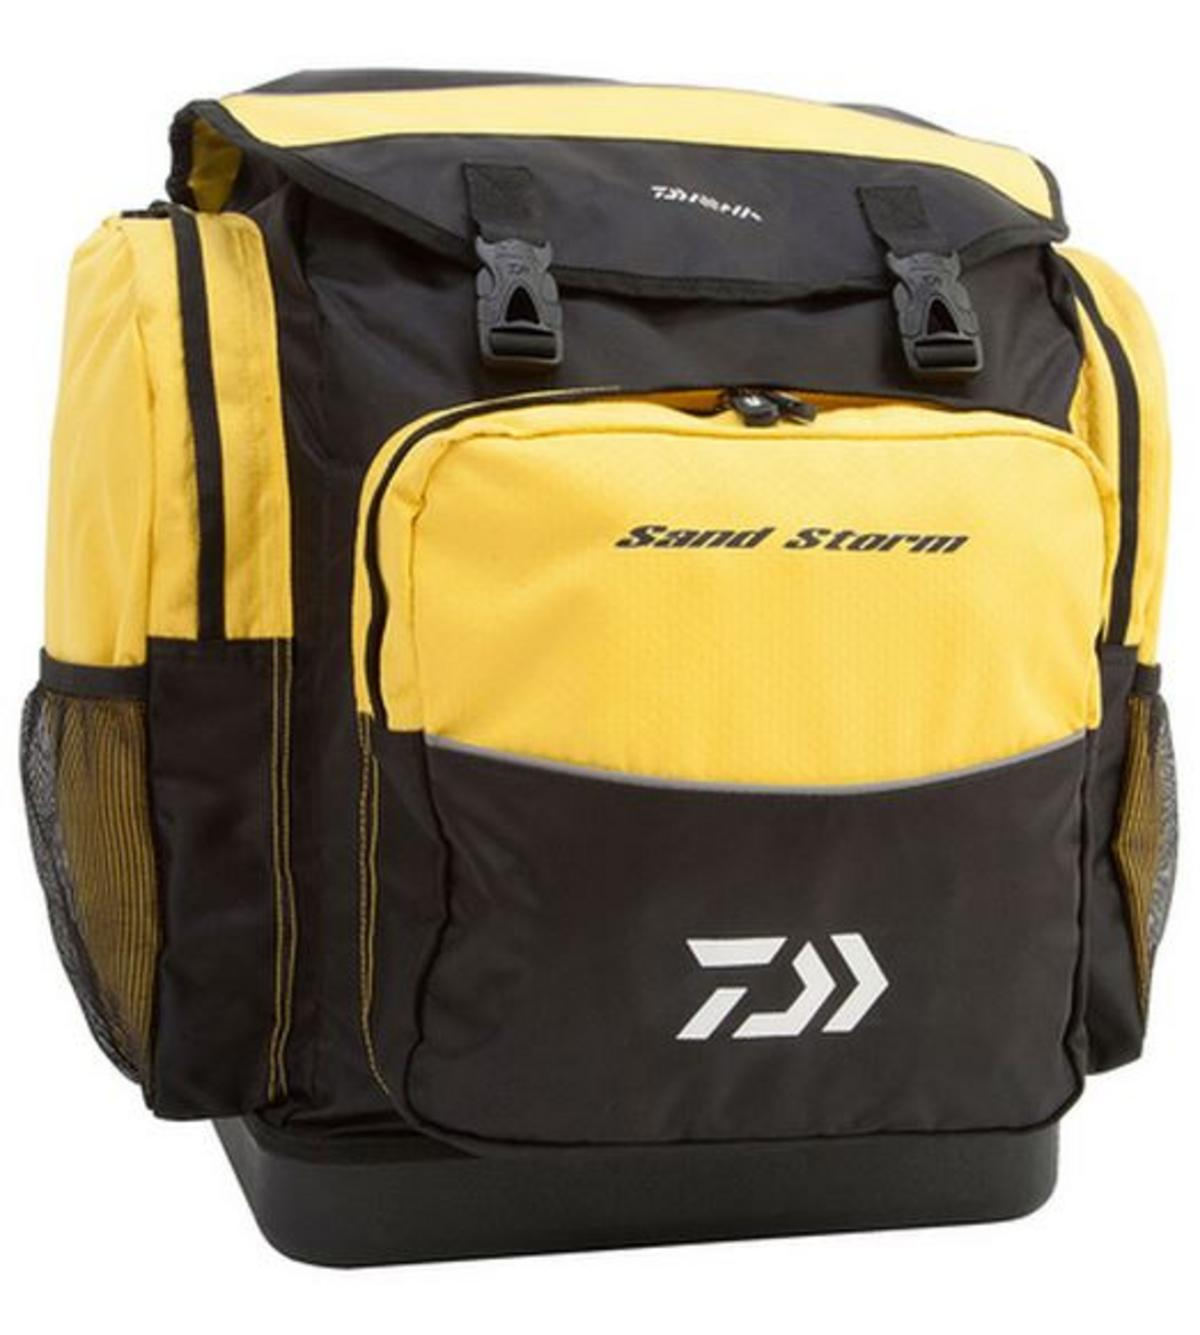 New Daiwa Sandstorm Sea Fishing Rucksack - DSSRS1